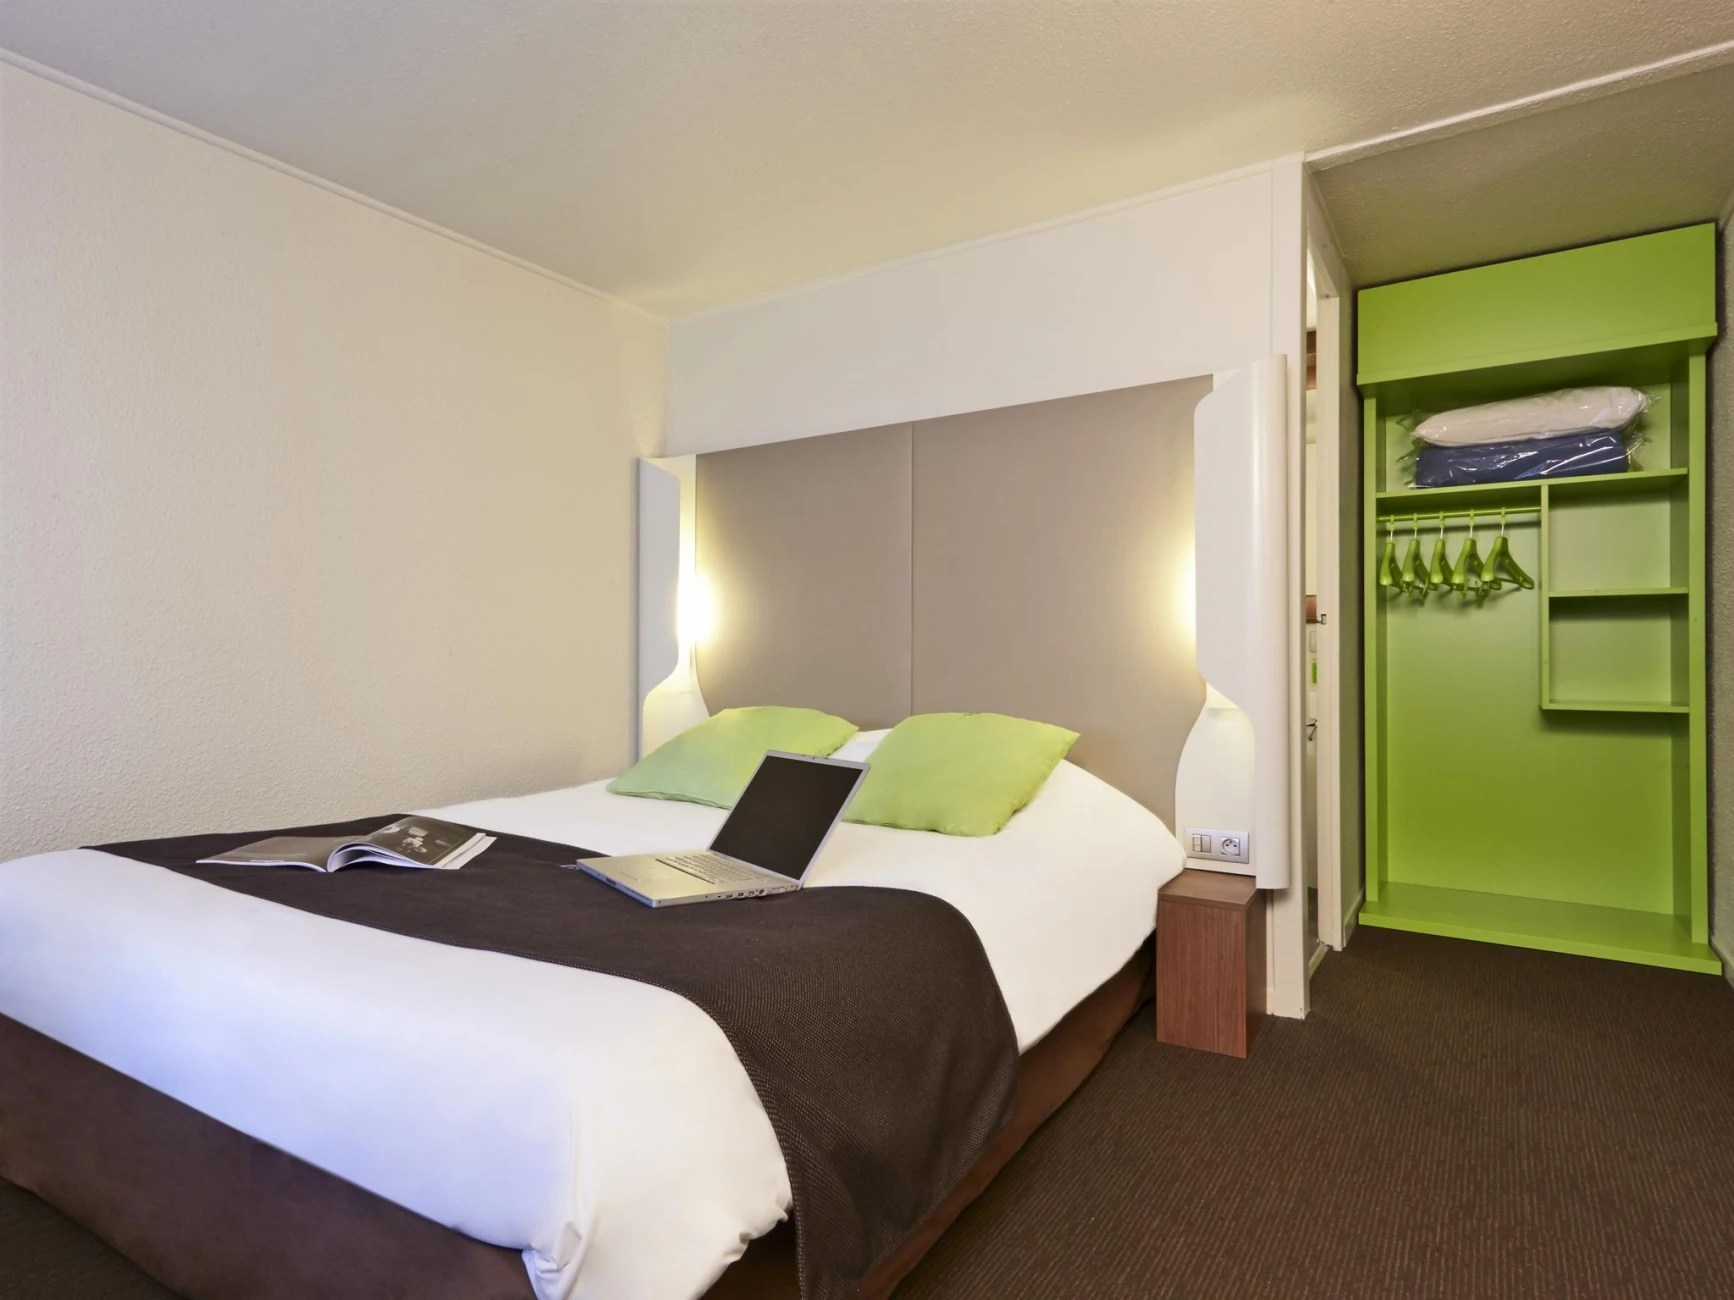 Hotel Campanile Rennes Cleunay Rennes Trivago Ie